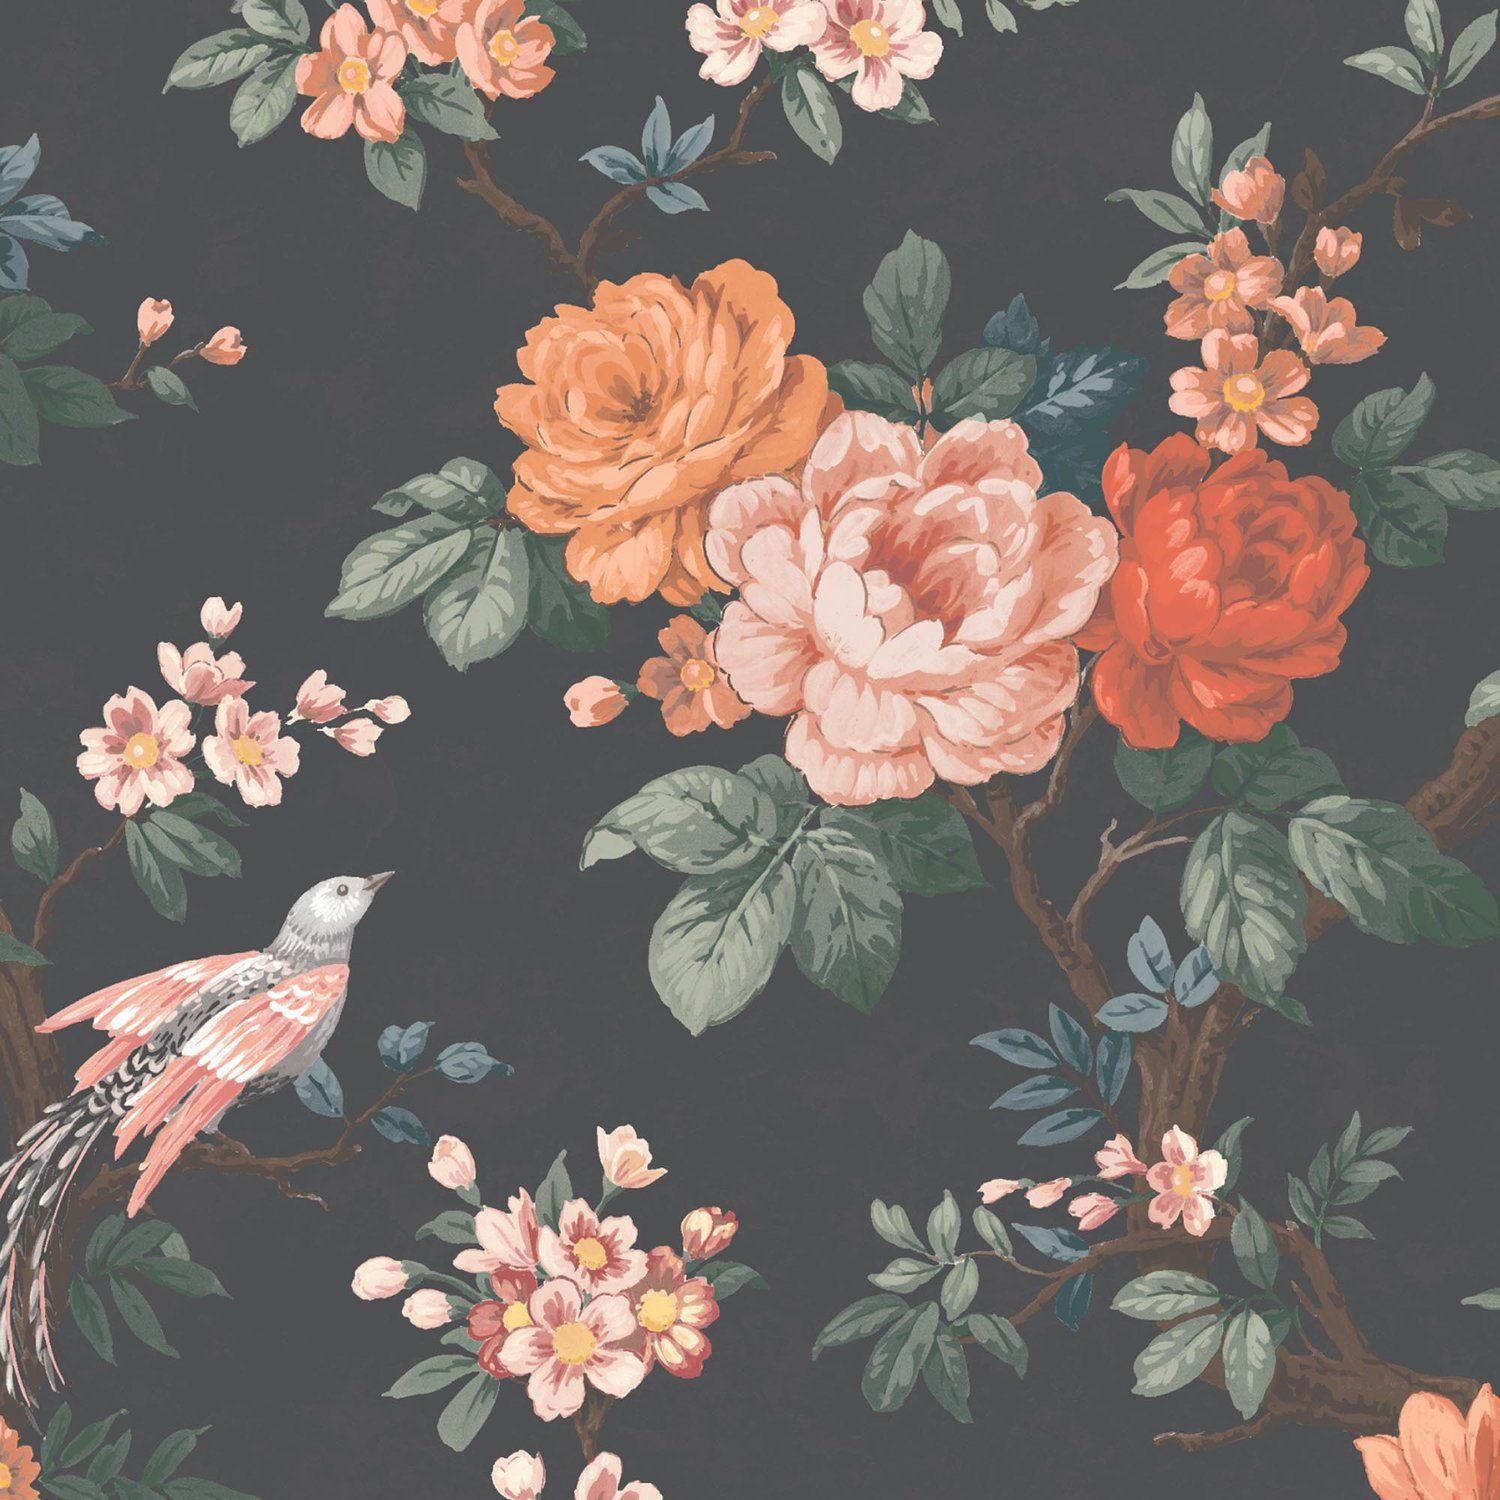 Woodchip & Magnolia's Latest Wallpaper Collections